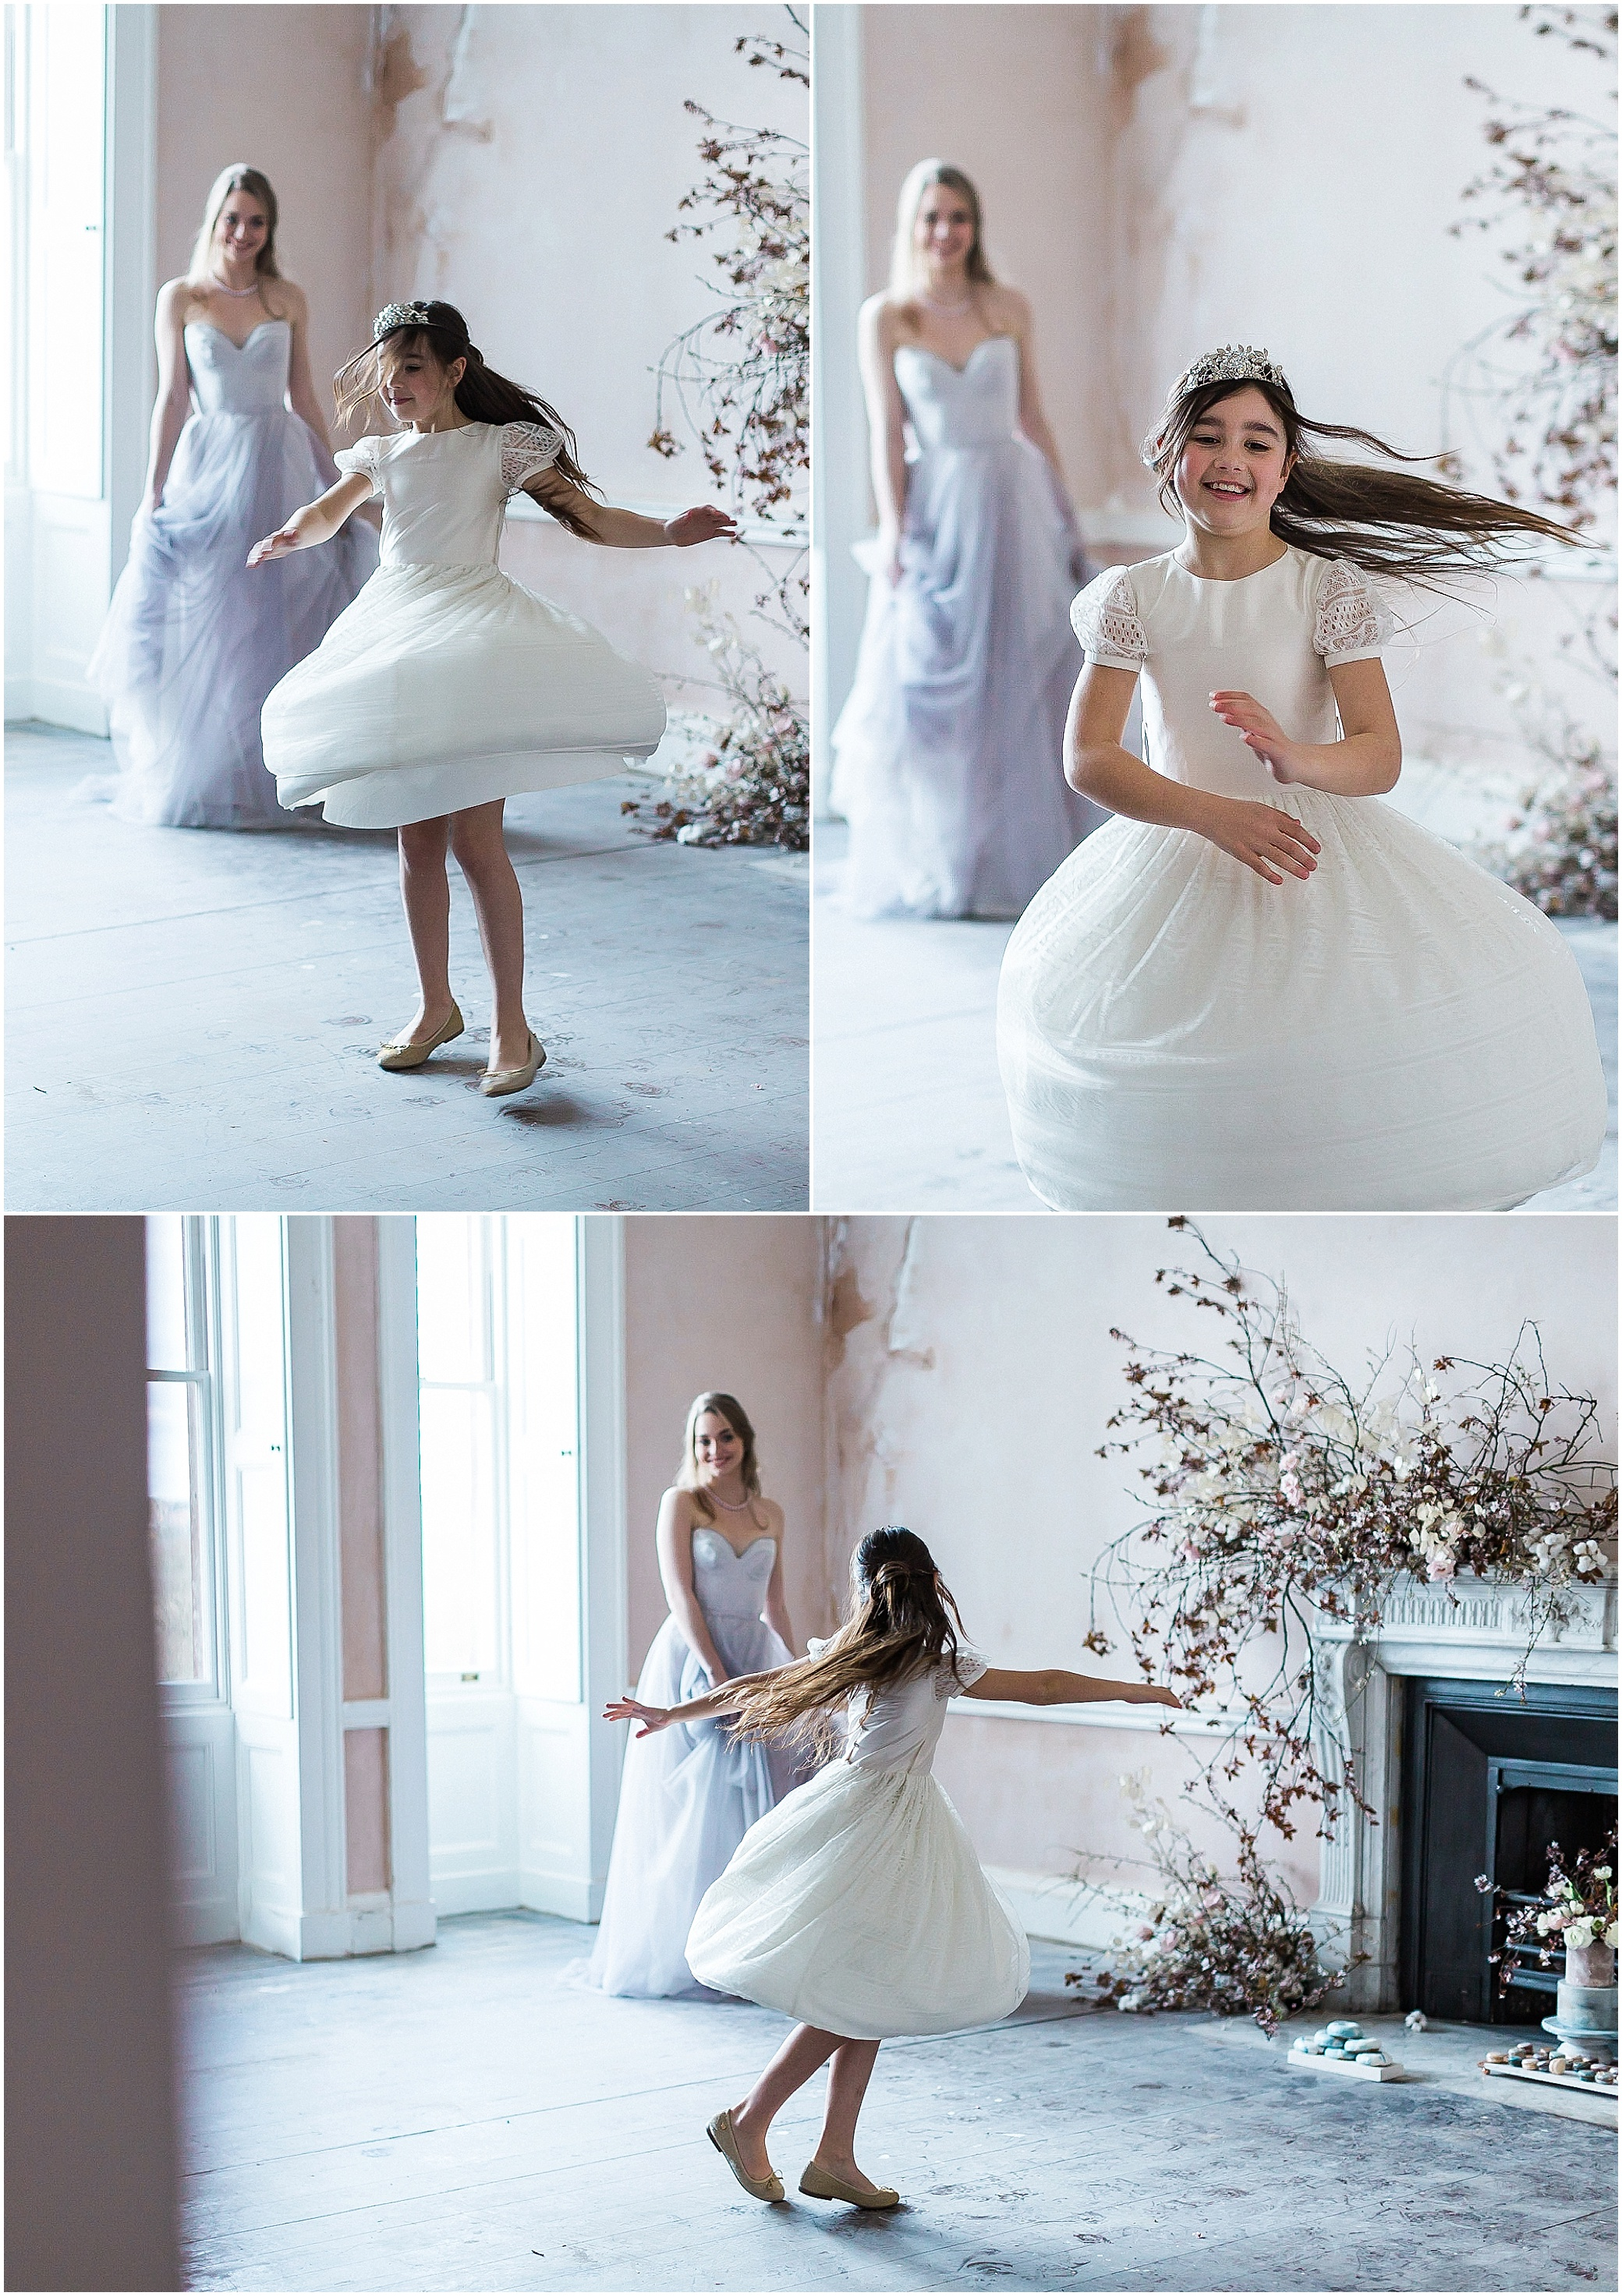 Bride and flower girl dancing at Somerley House wedding venue in Hampshire